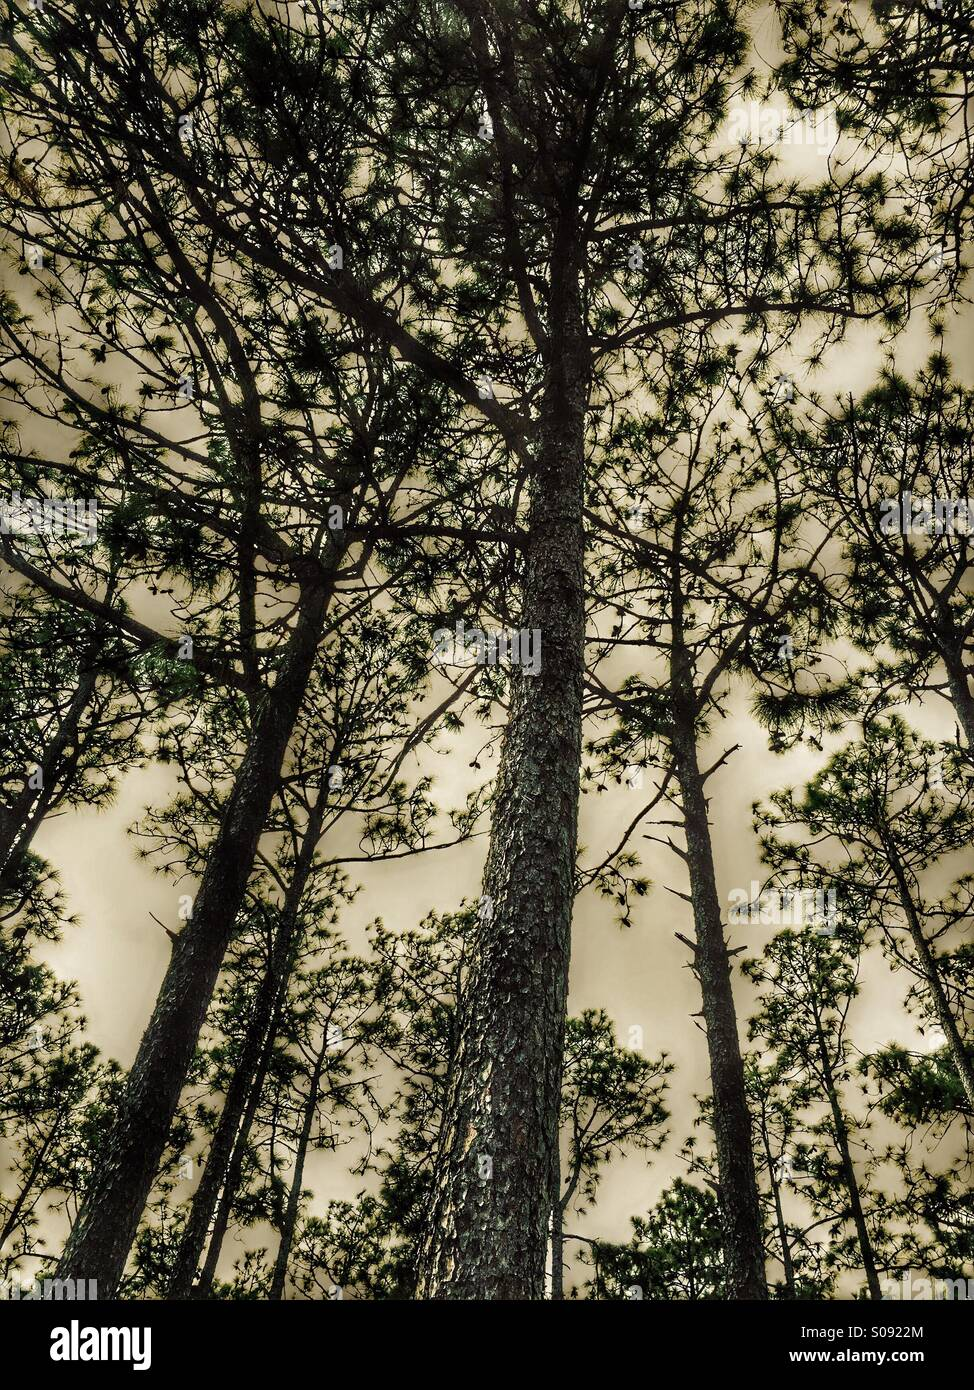 Monochromatic tall pine trees seen from below - Stock Image